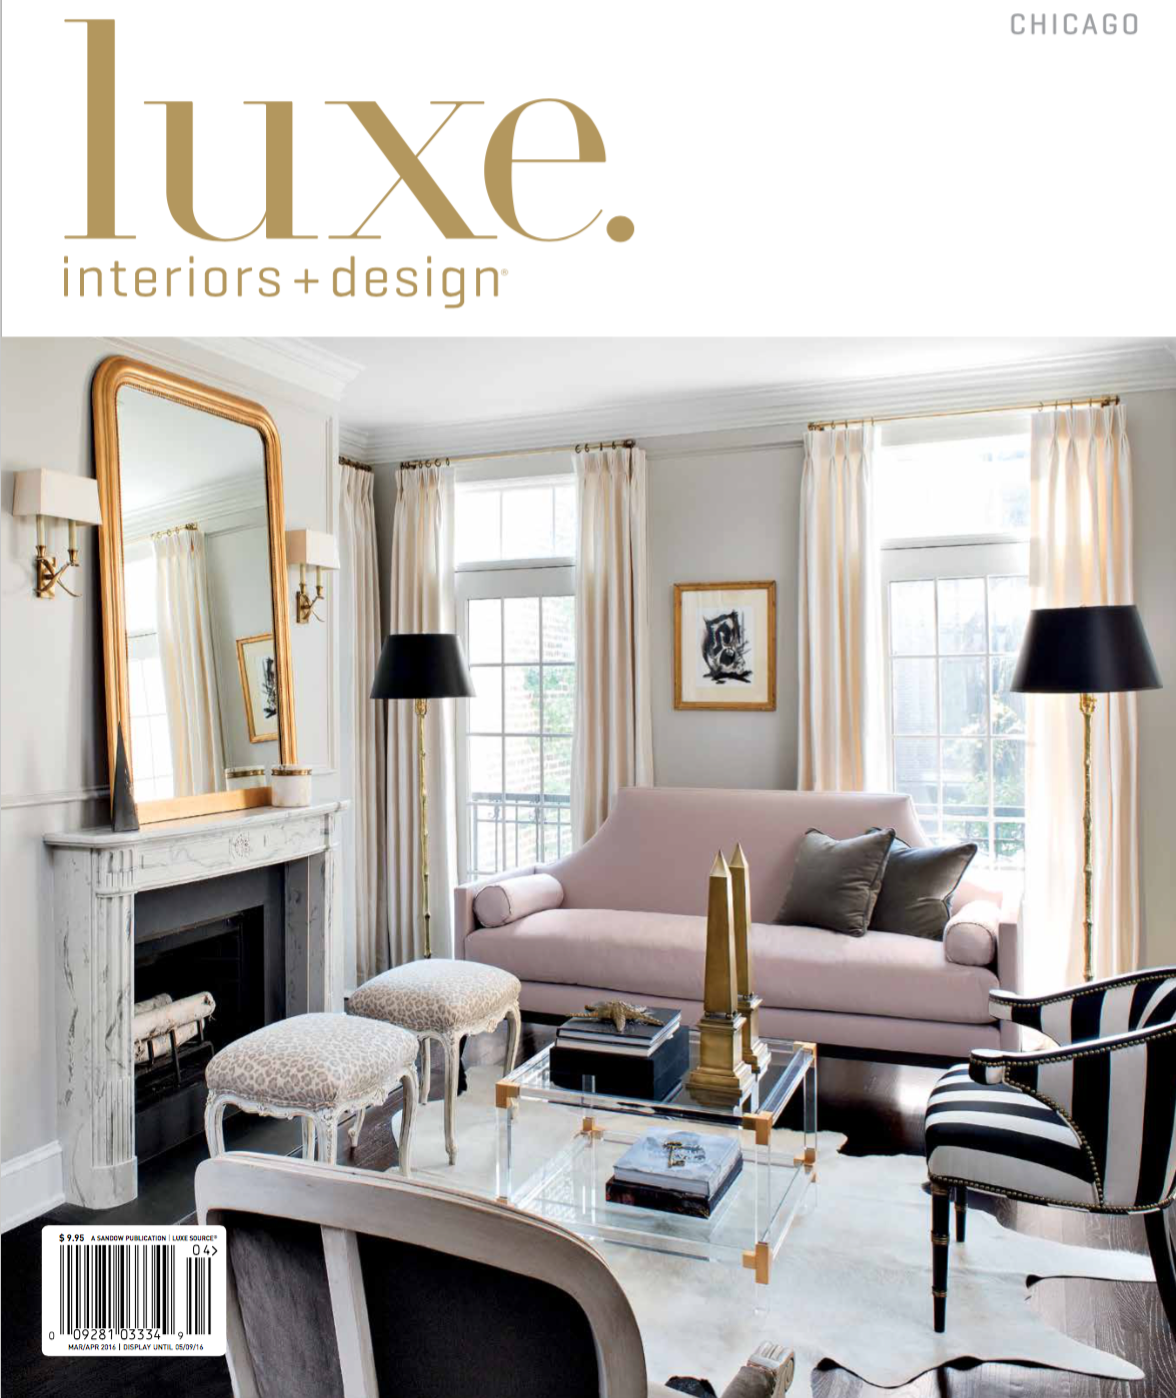 press casey lurie studio - Luxe Interiors And Design Magazine